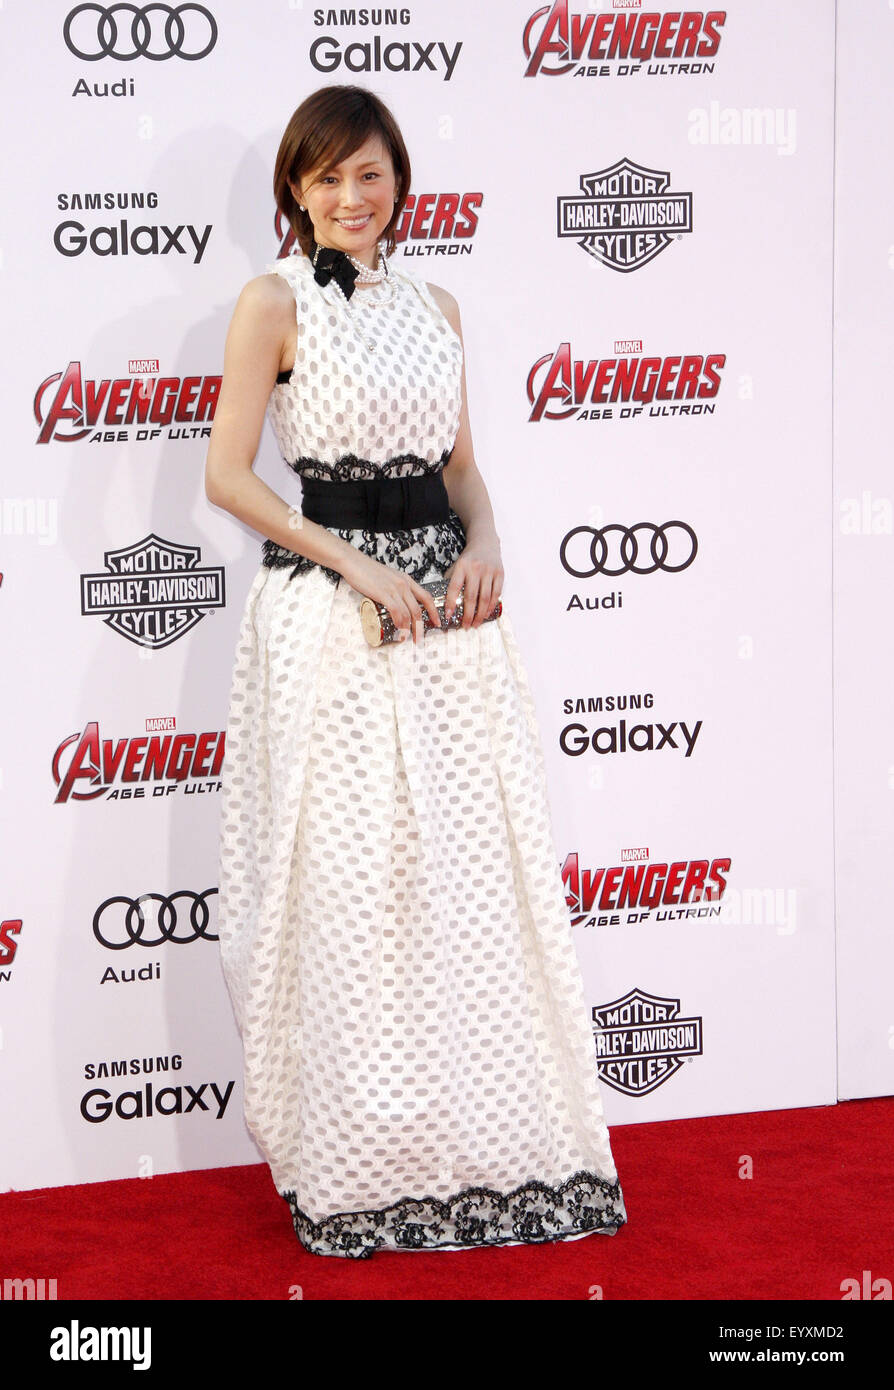 Ryoko Yunokura at the World premiere of Marvel's 'Avengers: Age Of Ultron' held at the Dolby Theatre - Stock Image